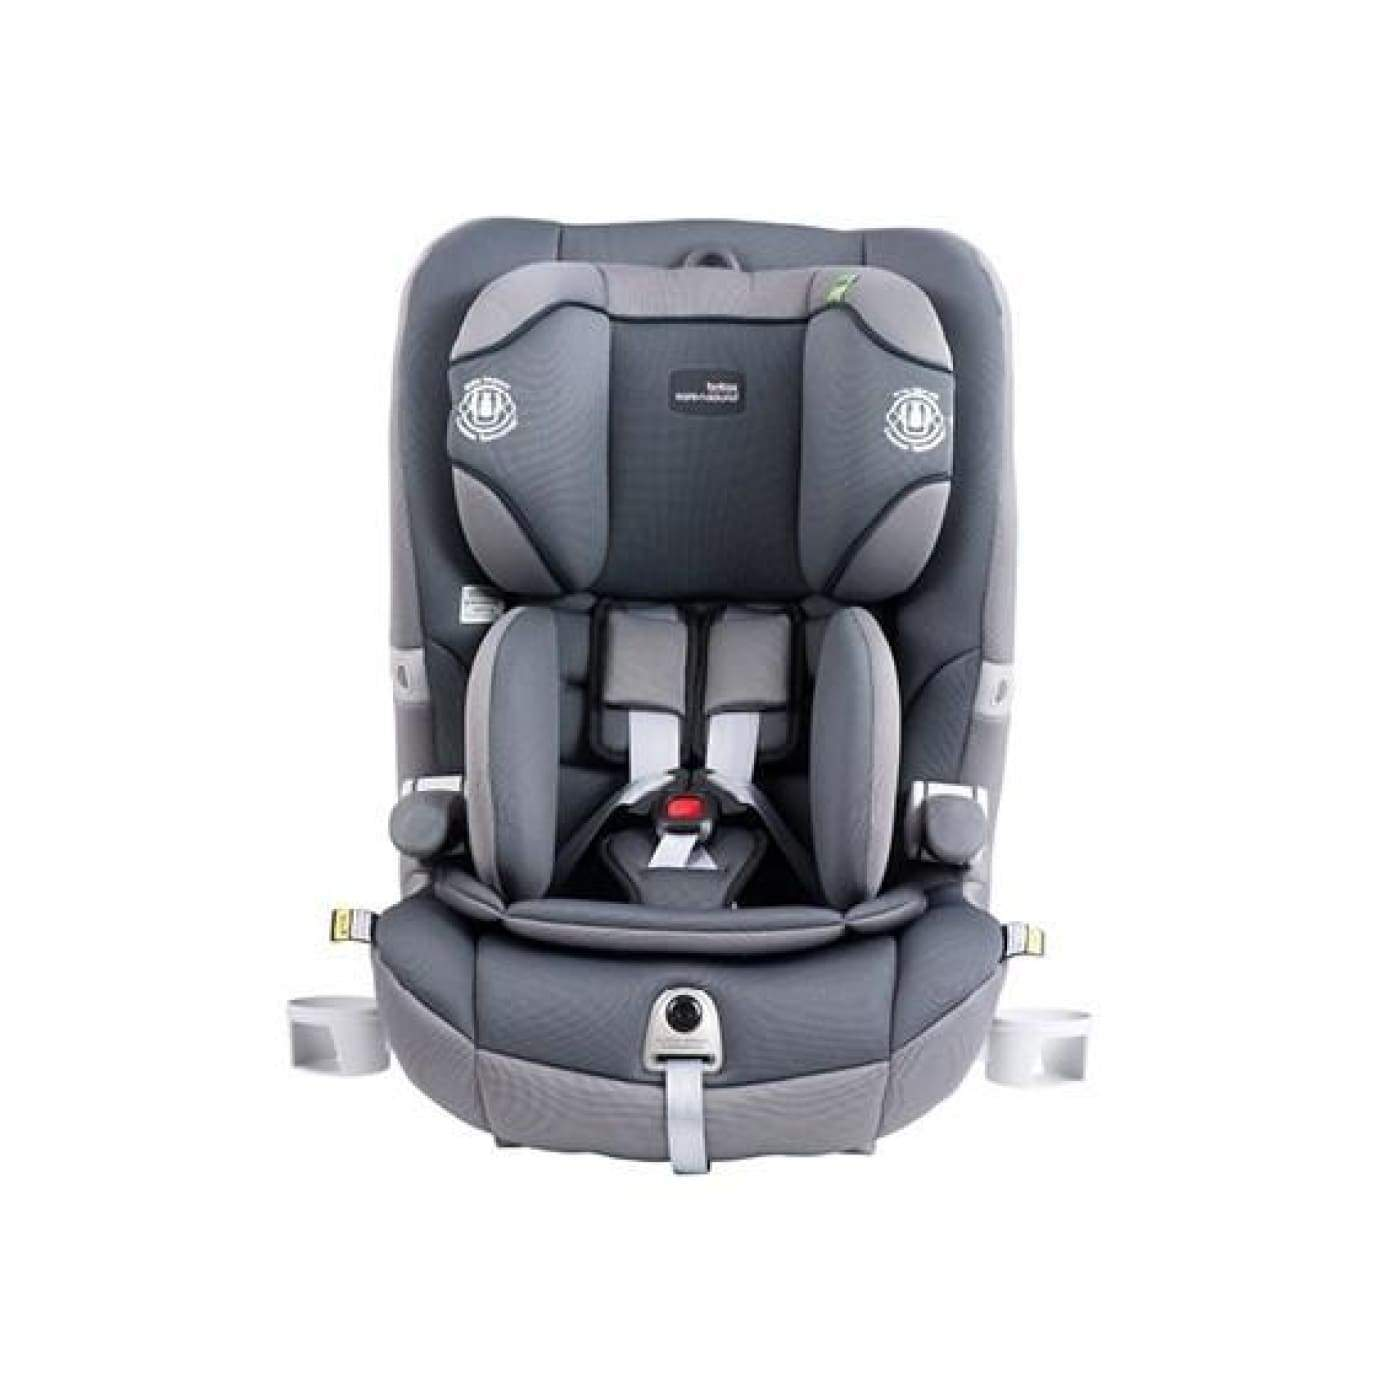 Britax SNS Maxi Guard Pro Harnessed Booster 6M-8YR - Pebble Grey - CAR SEATS - HARNESSED BOOSTERS (6M-8YR)